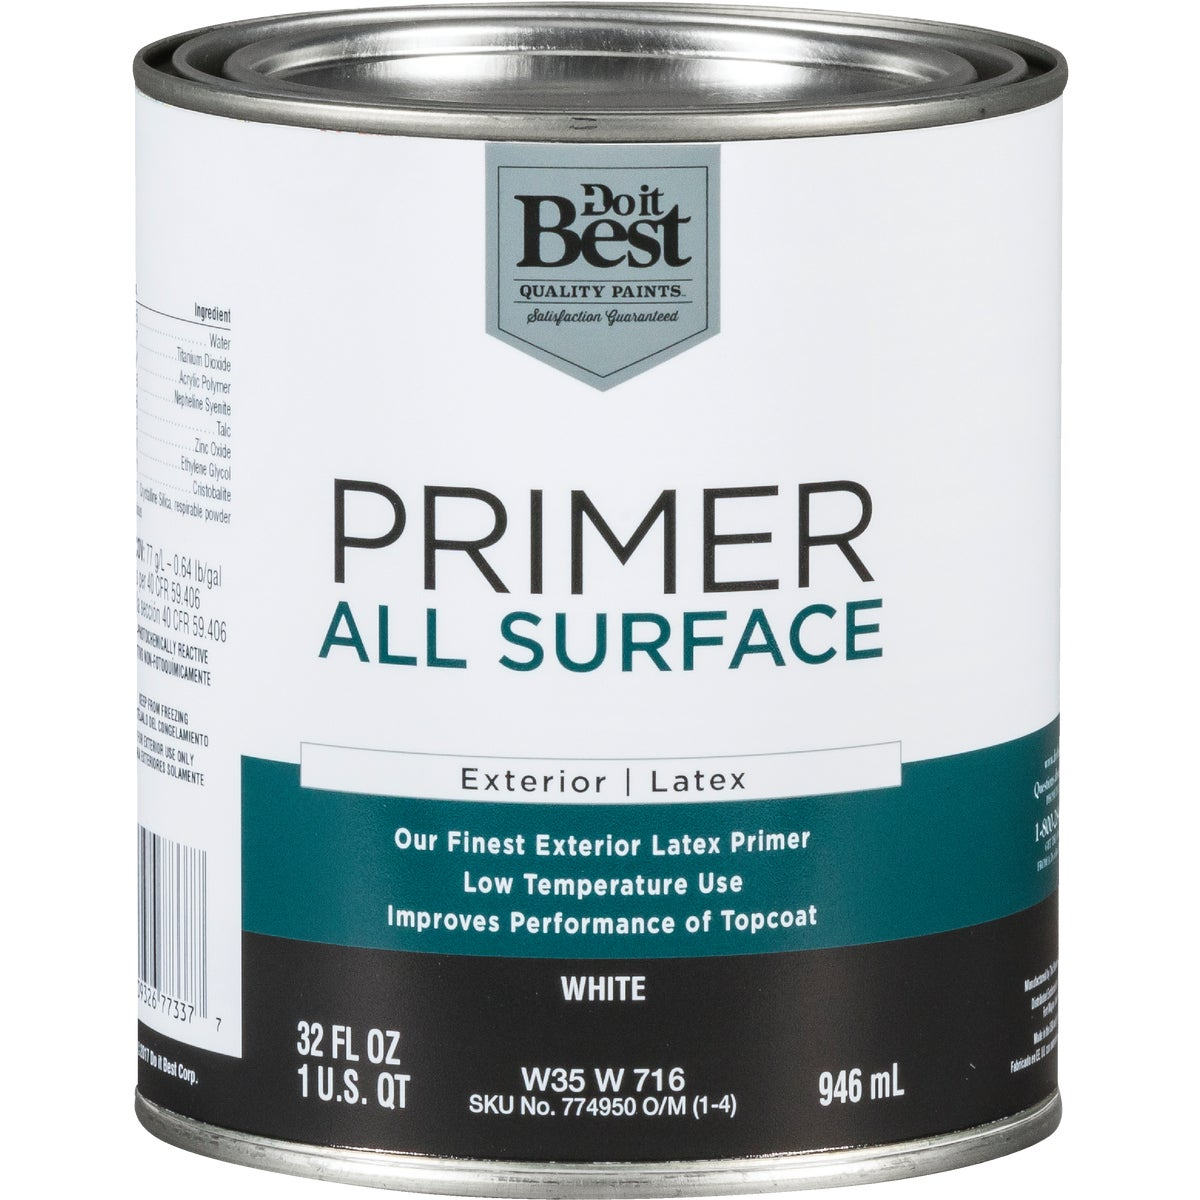 EXT WHITE LATEX PRIMER - W35W00716-44 by Do it Best